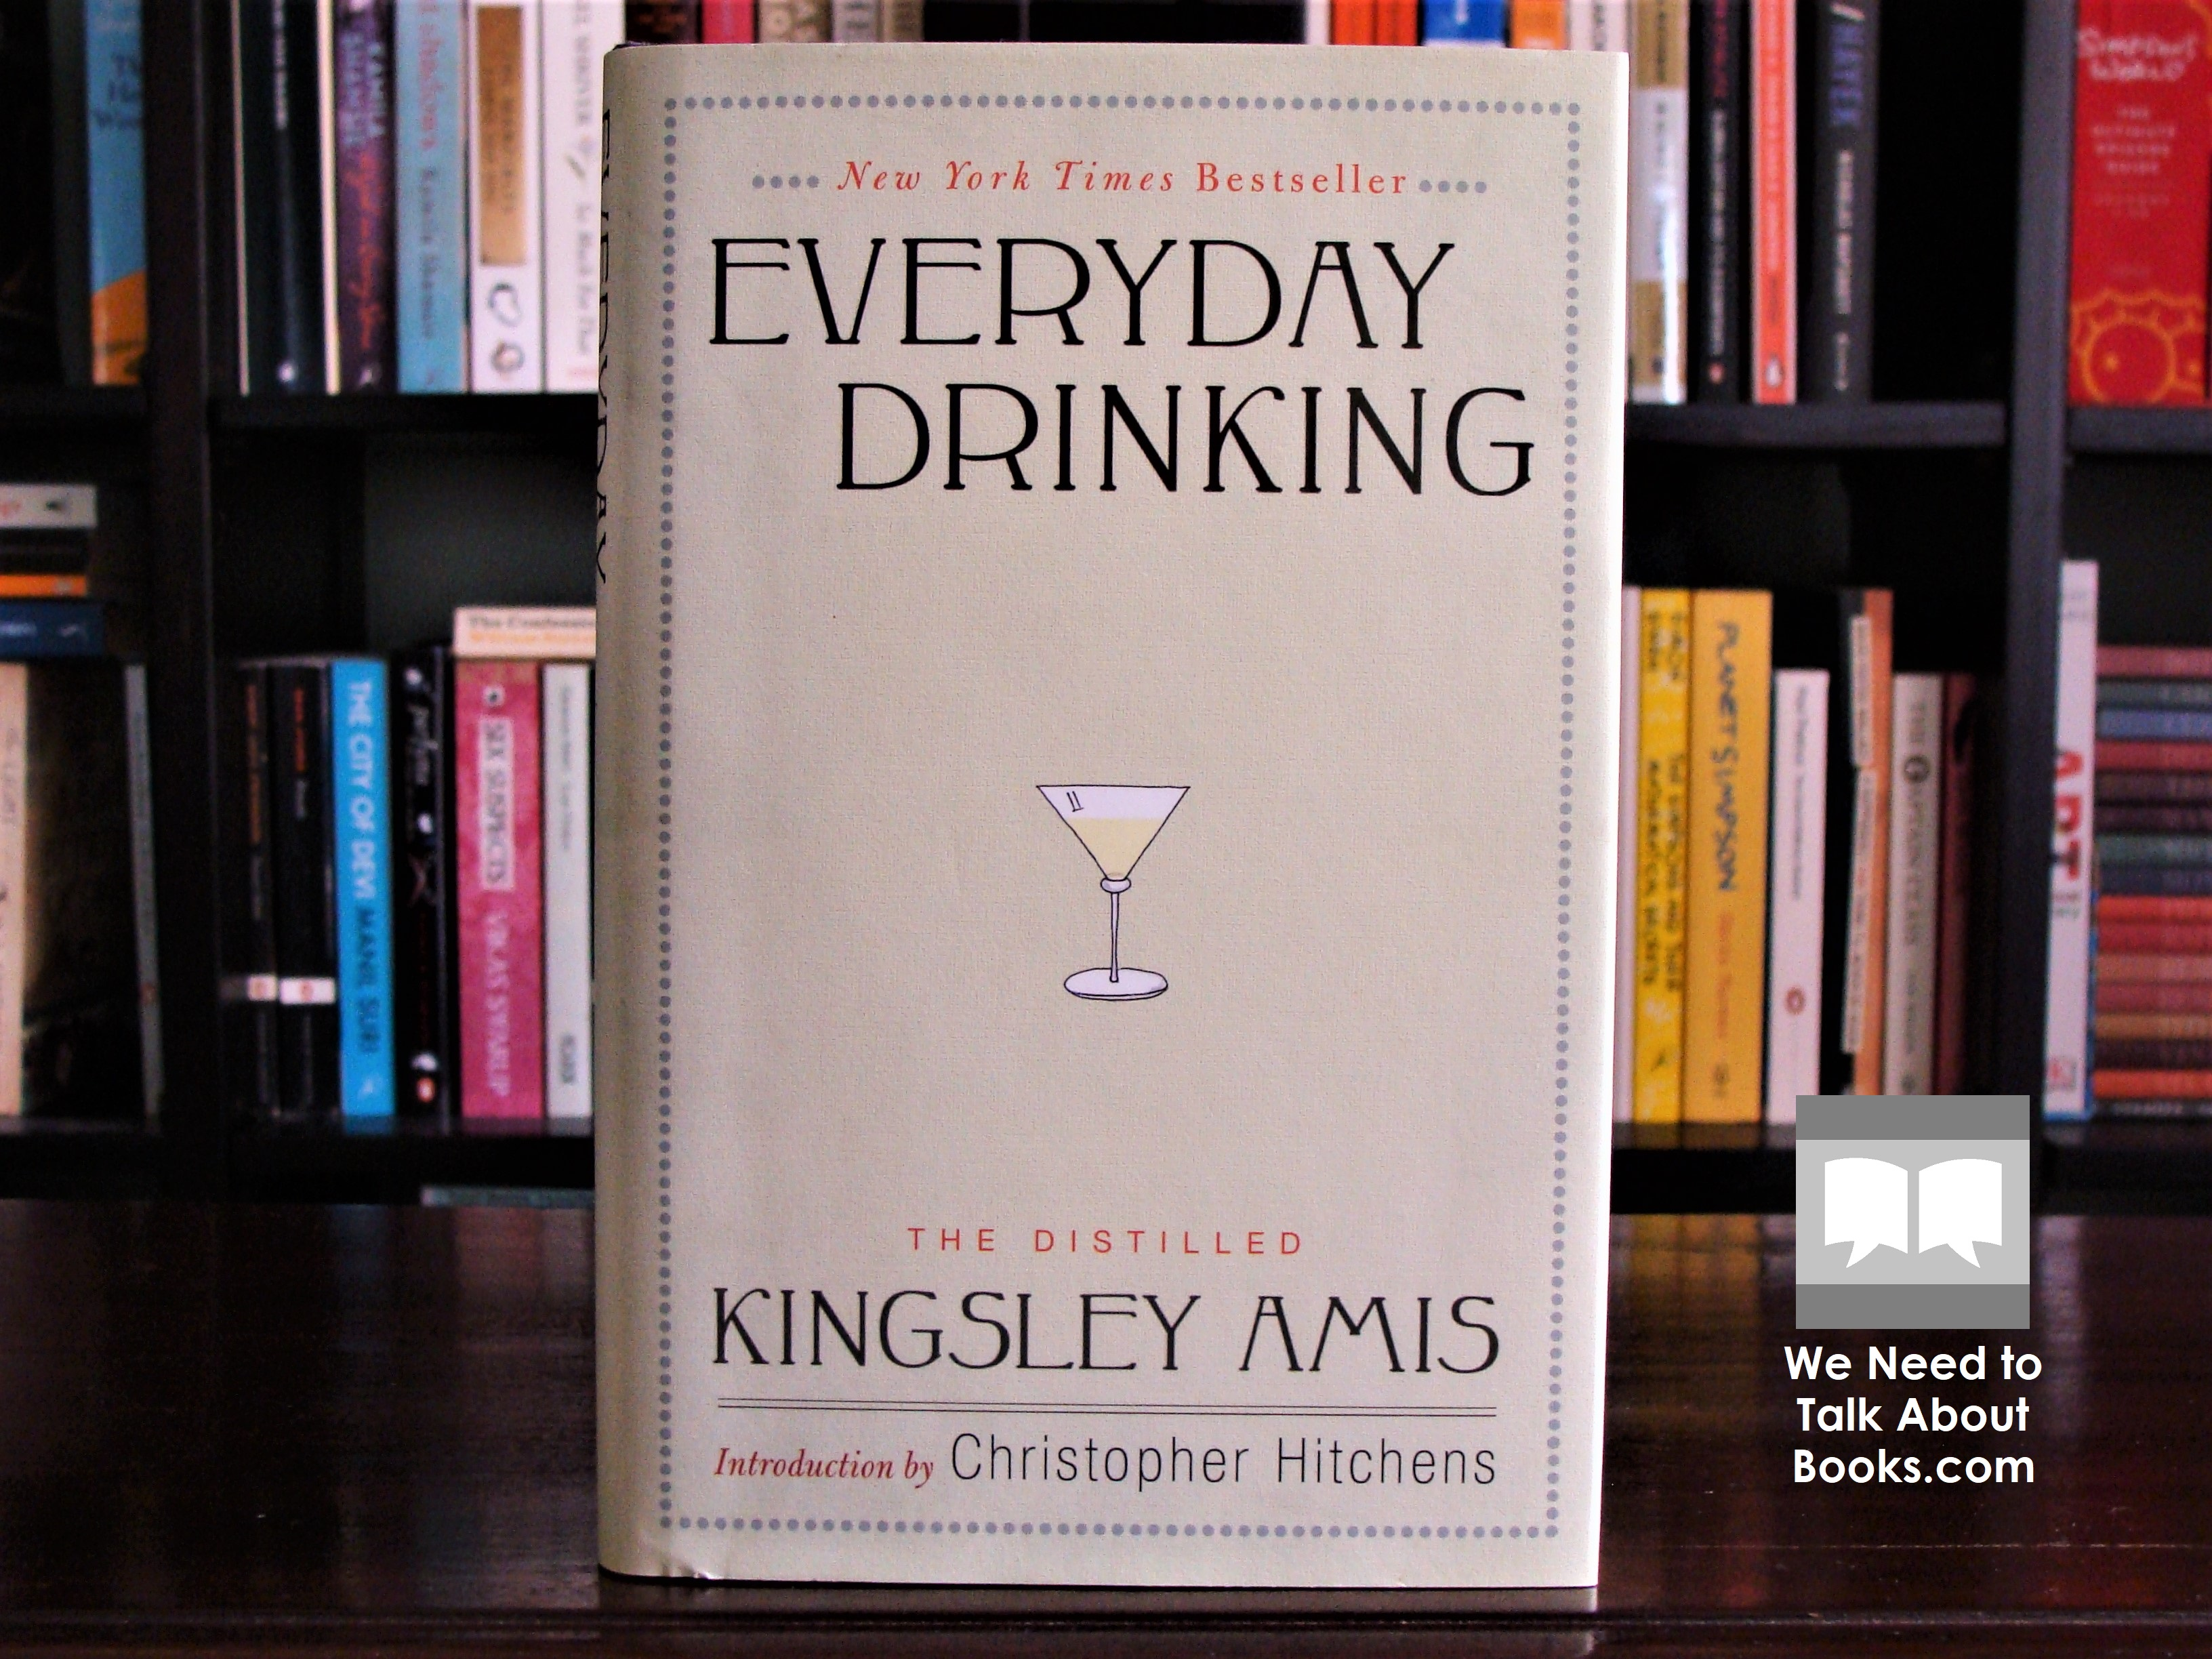 Cover image of Everyday Drinking by Kingsley Amis